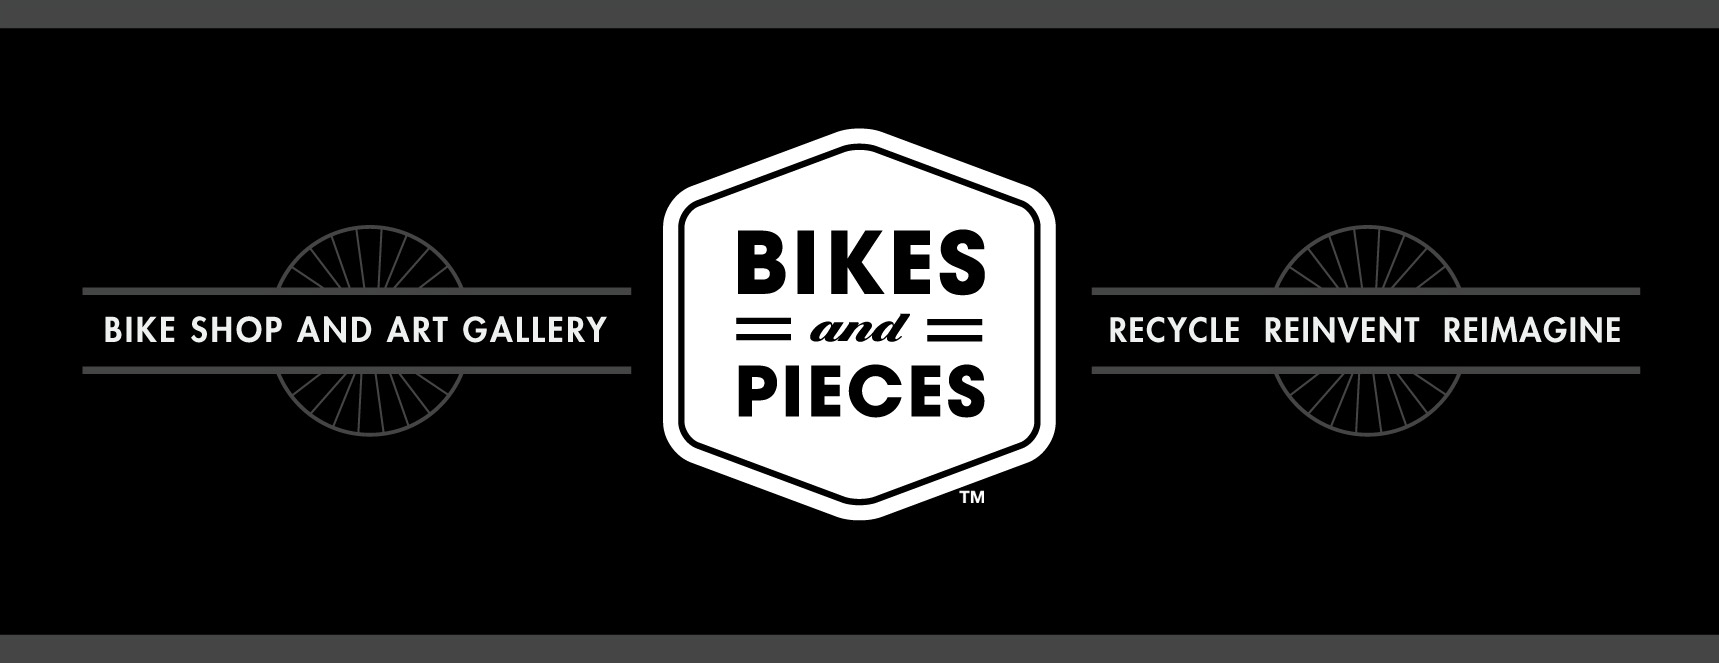 bikes and pieces banner